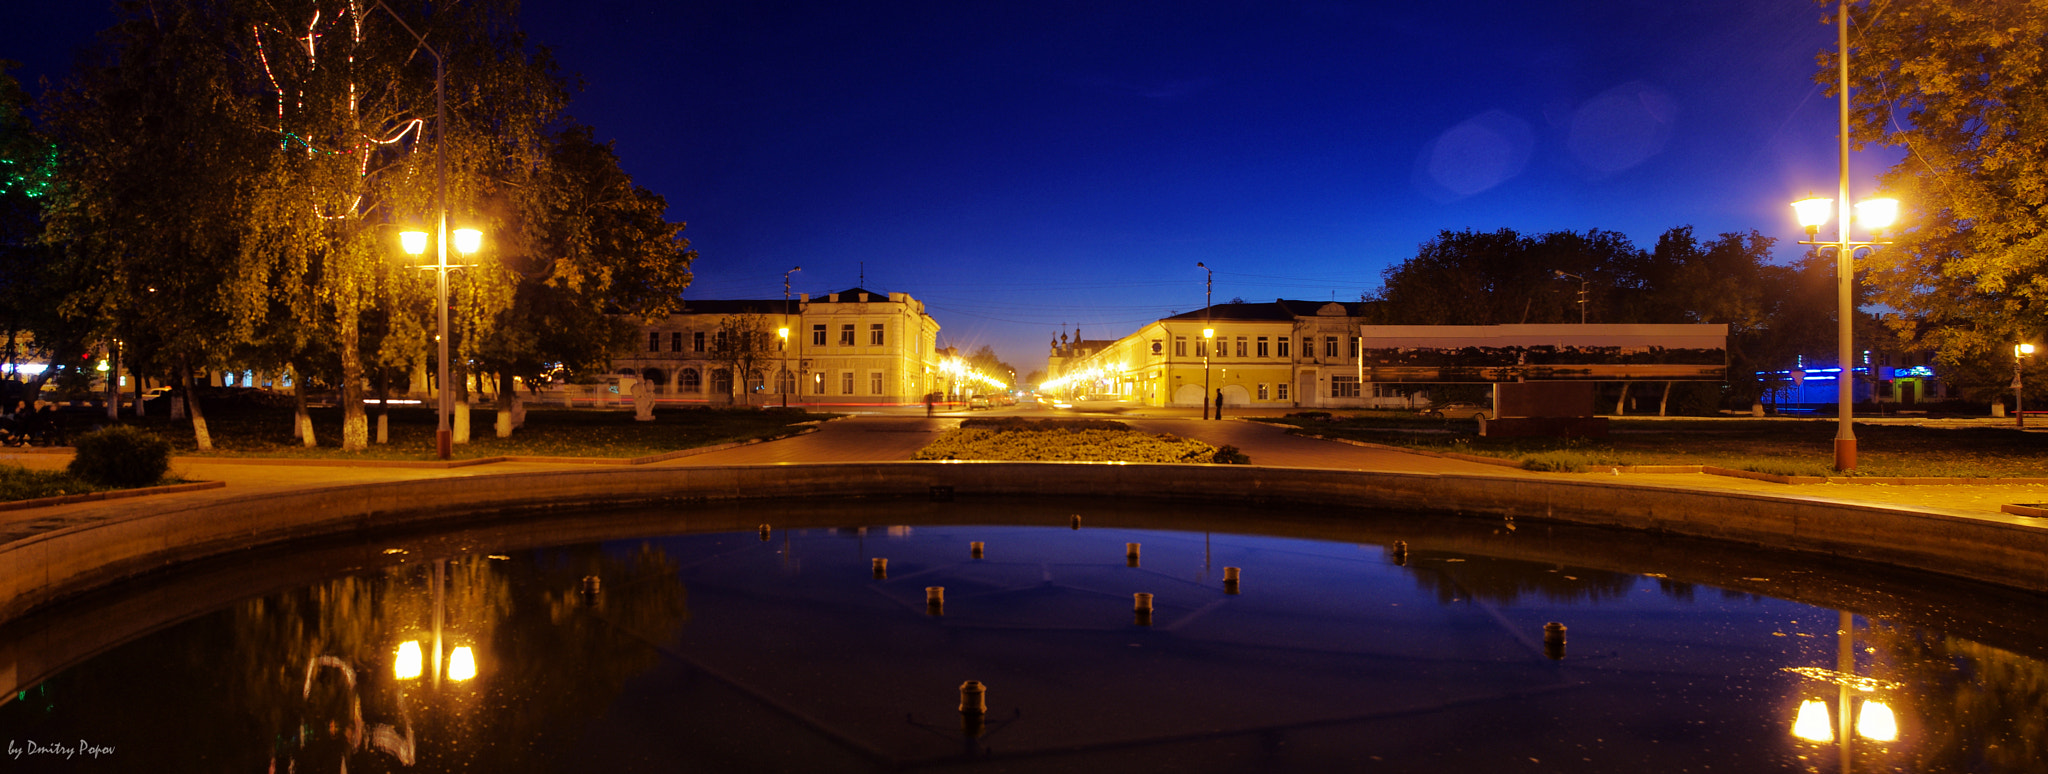 Photograph Evening Square by Dmitry Popov on 500px